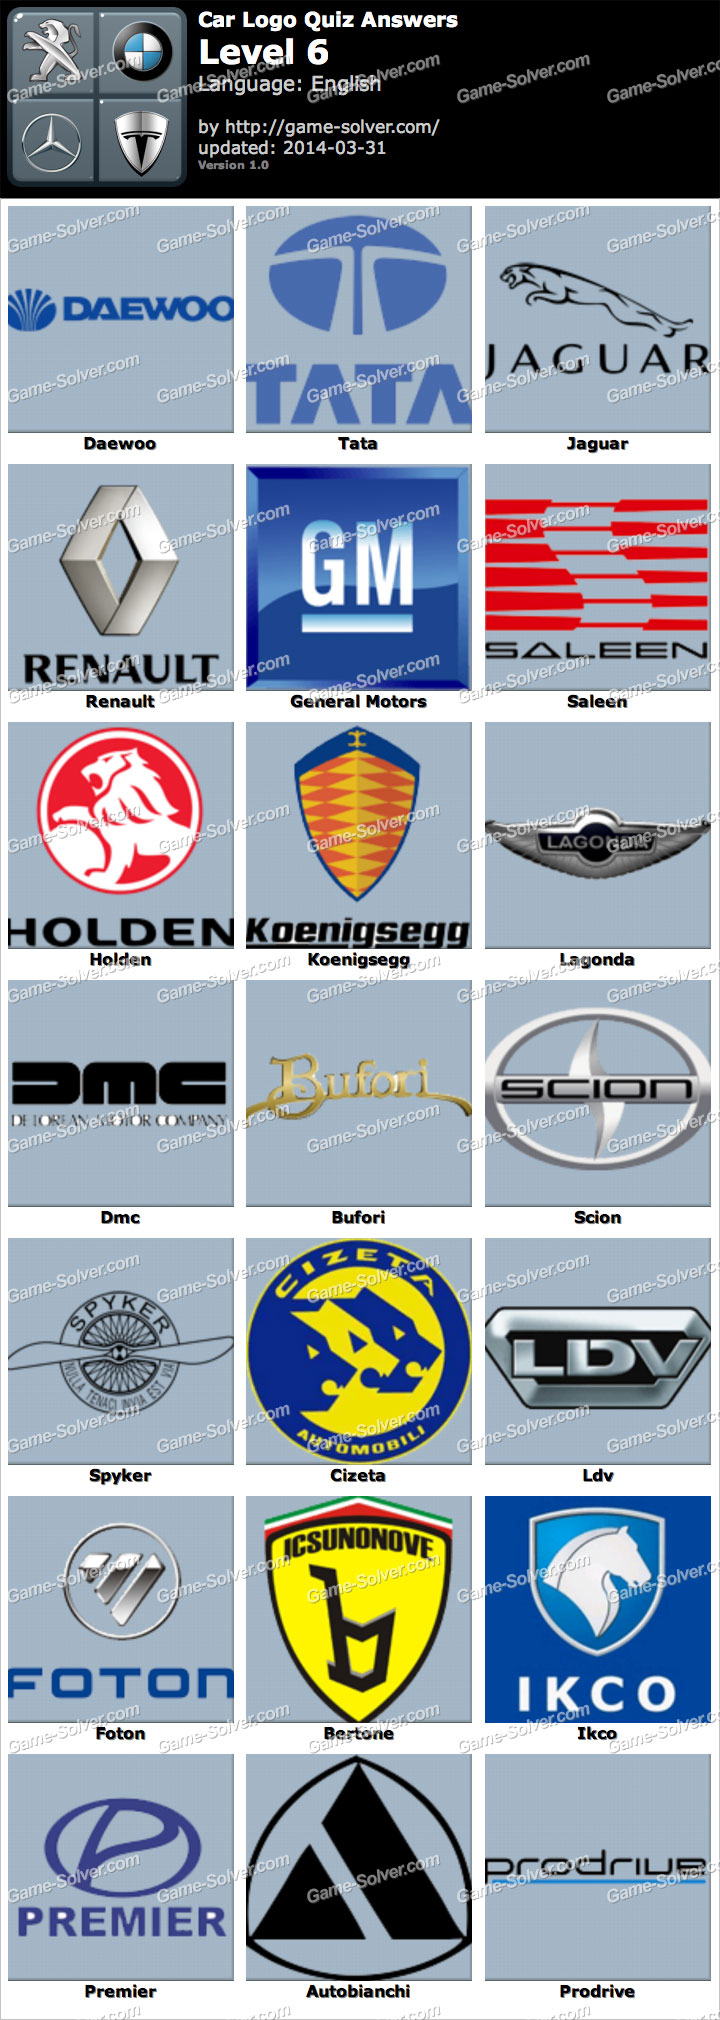 car logo quiz level 6 game solver